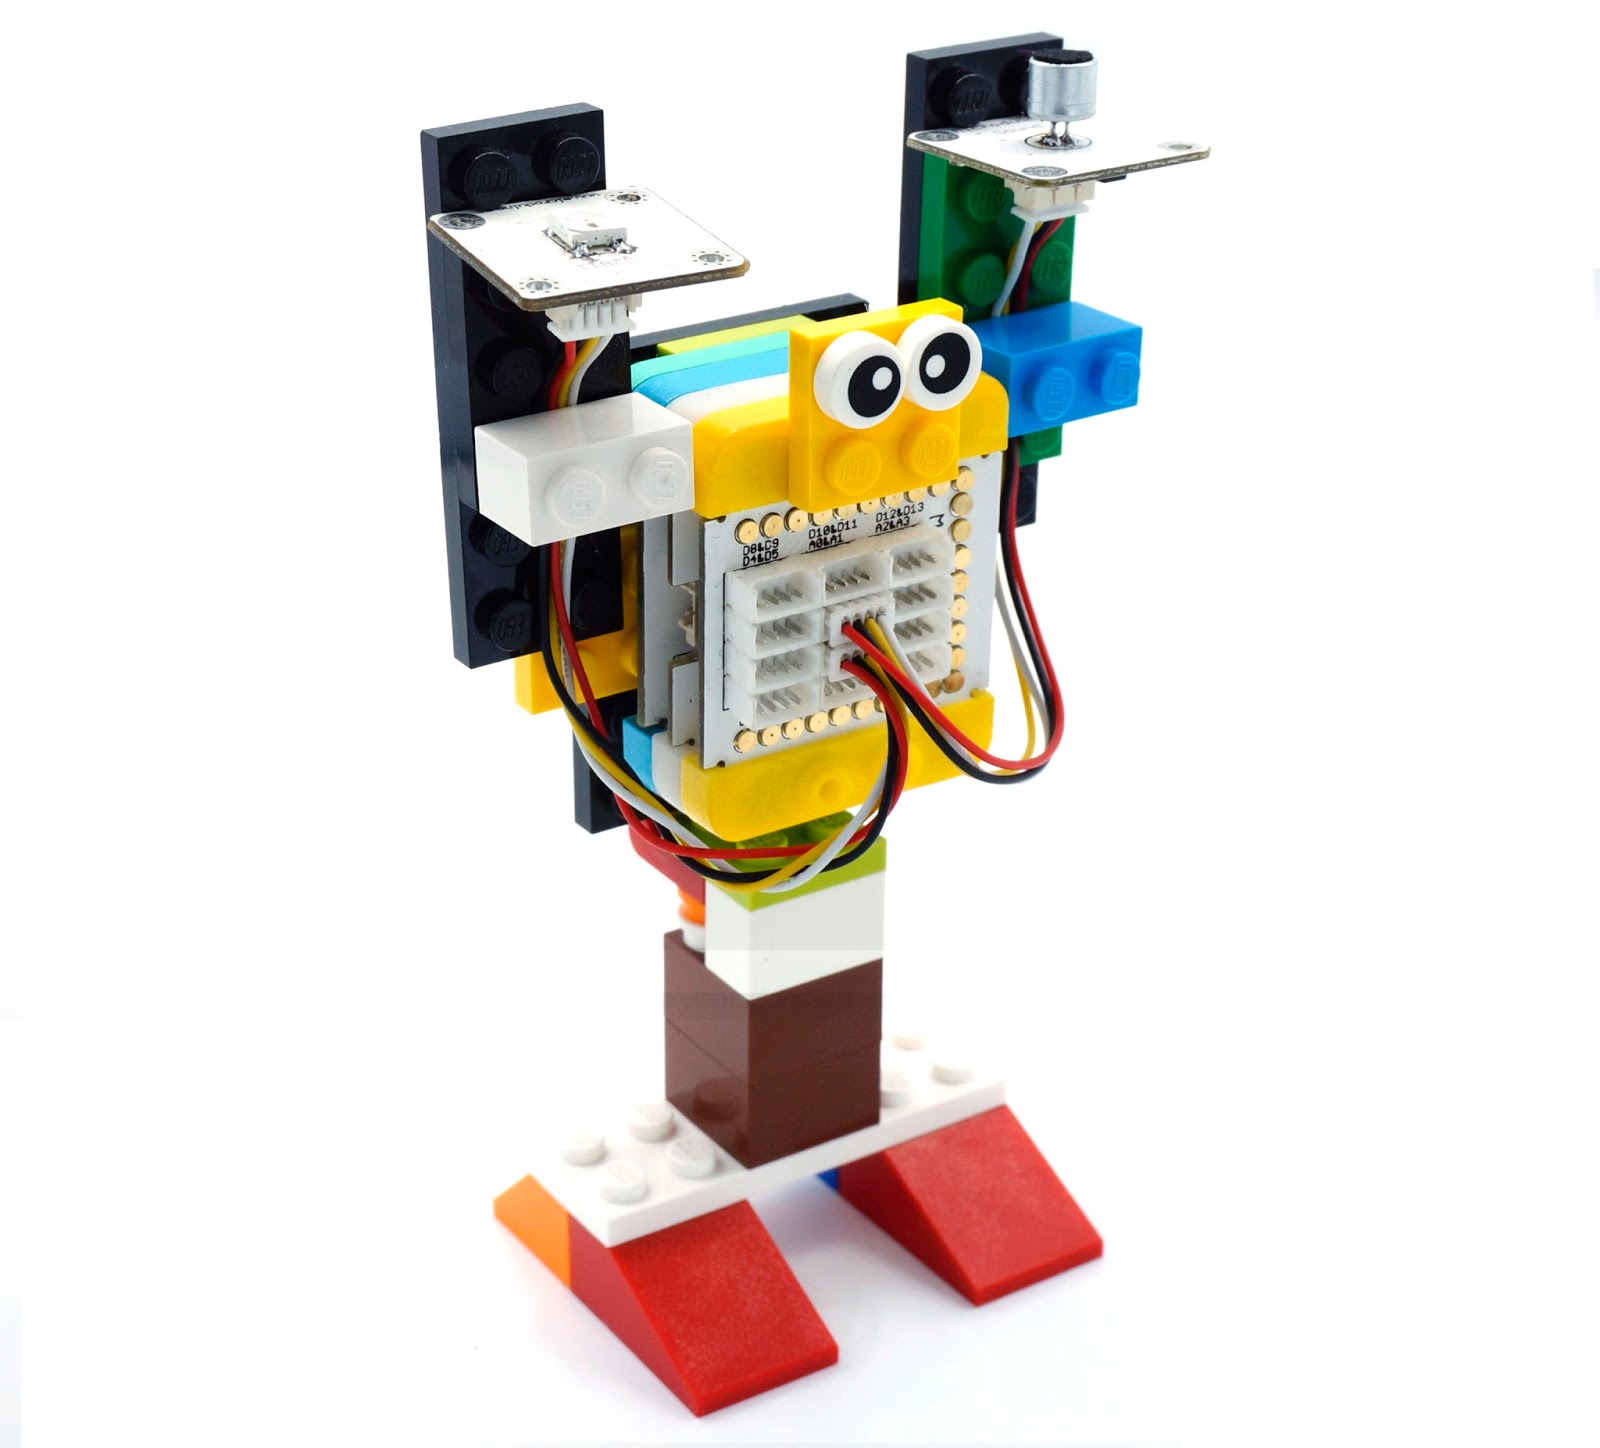 Meet mCookie, the powerful new magnetic, LEGO® and Arduino-compatible modules from Microduino